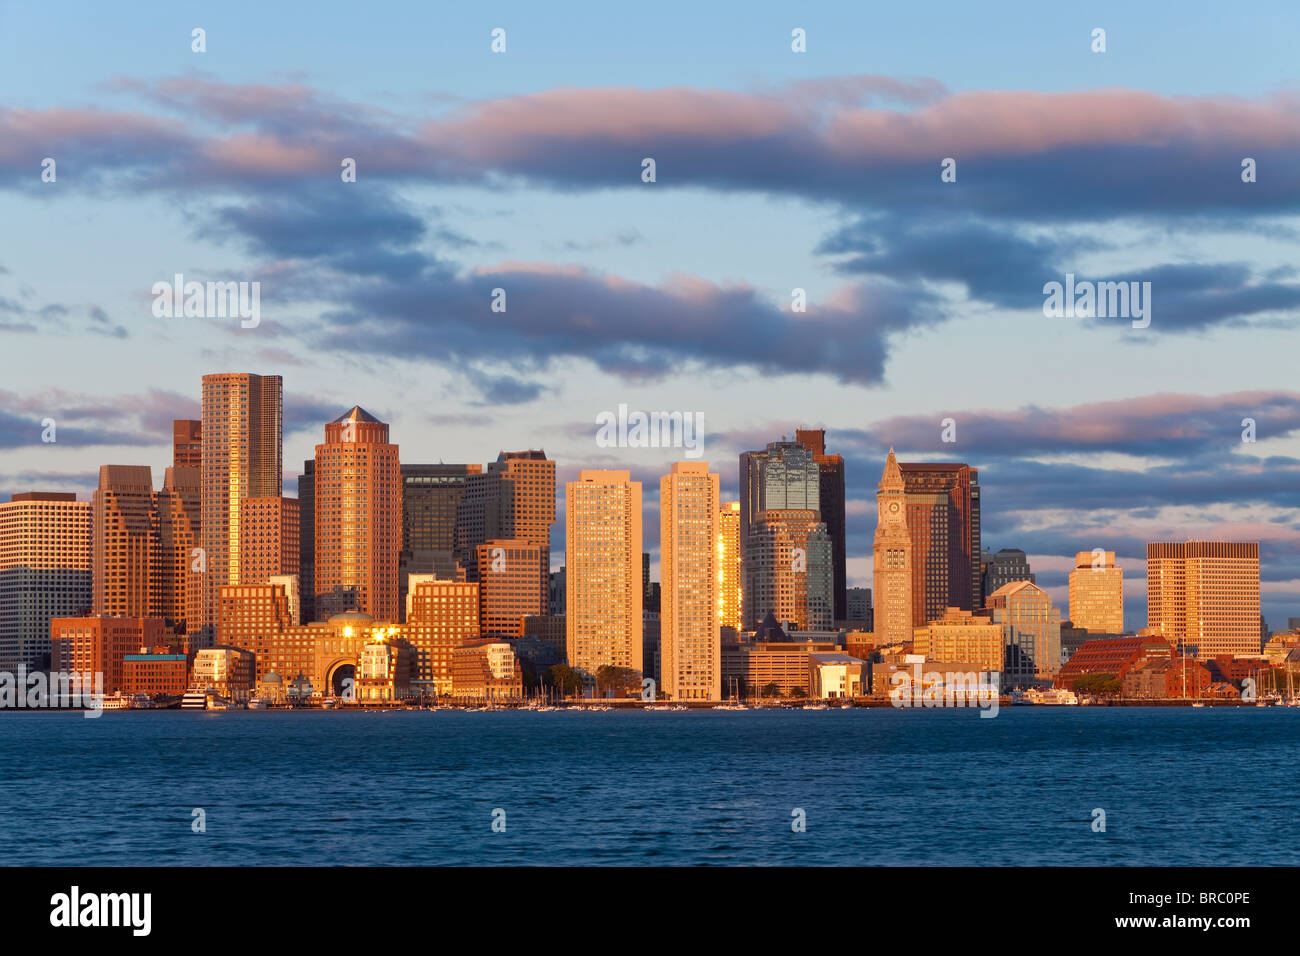 City skline viewed across Boston harbour at dawn, Boston, Massachusetts, New England, USA - Stock Image